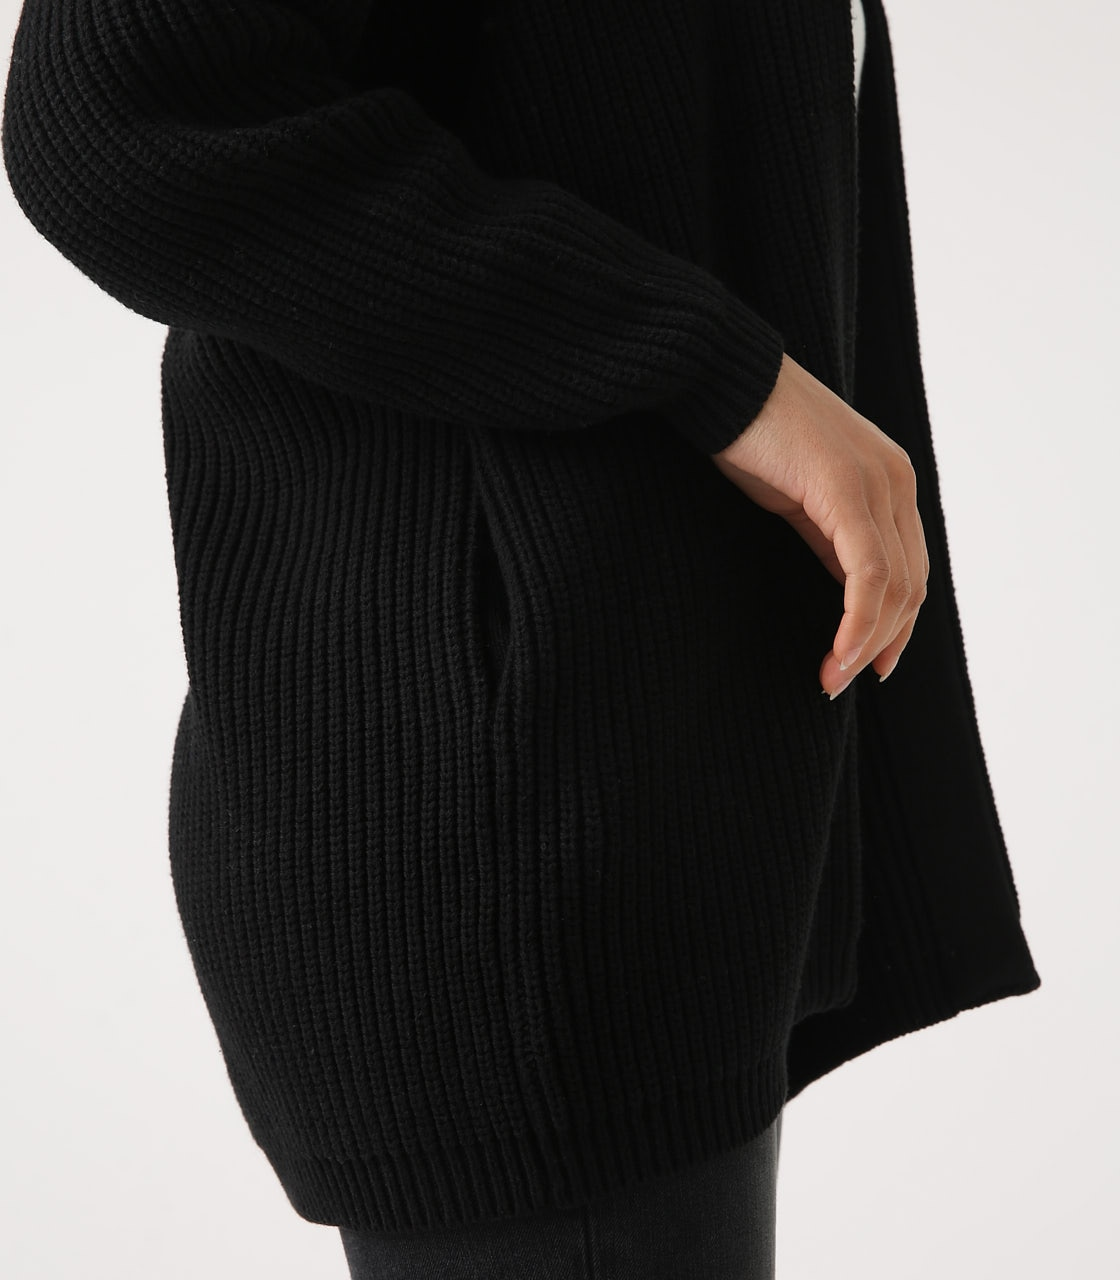 【AZUL BY MOUSSY】LOWGAUGE LONG KNIT CARDIGAN 詳細画像 BLK 9